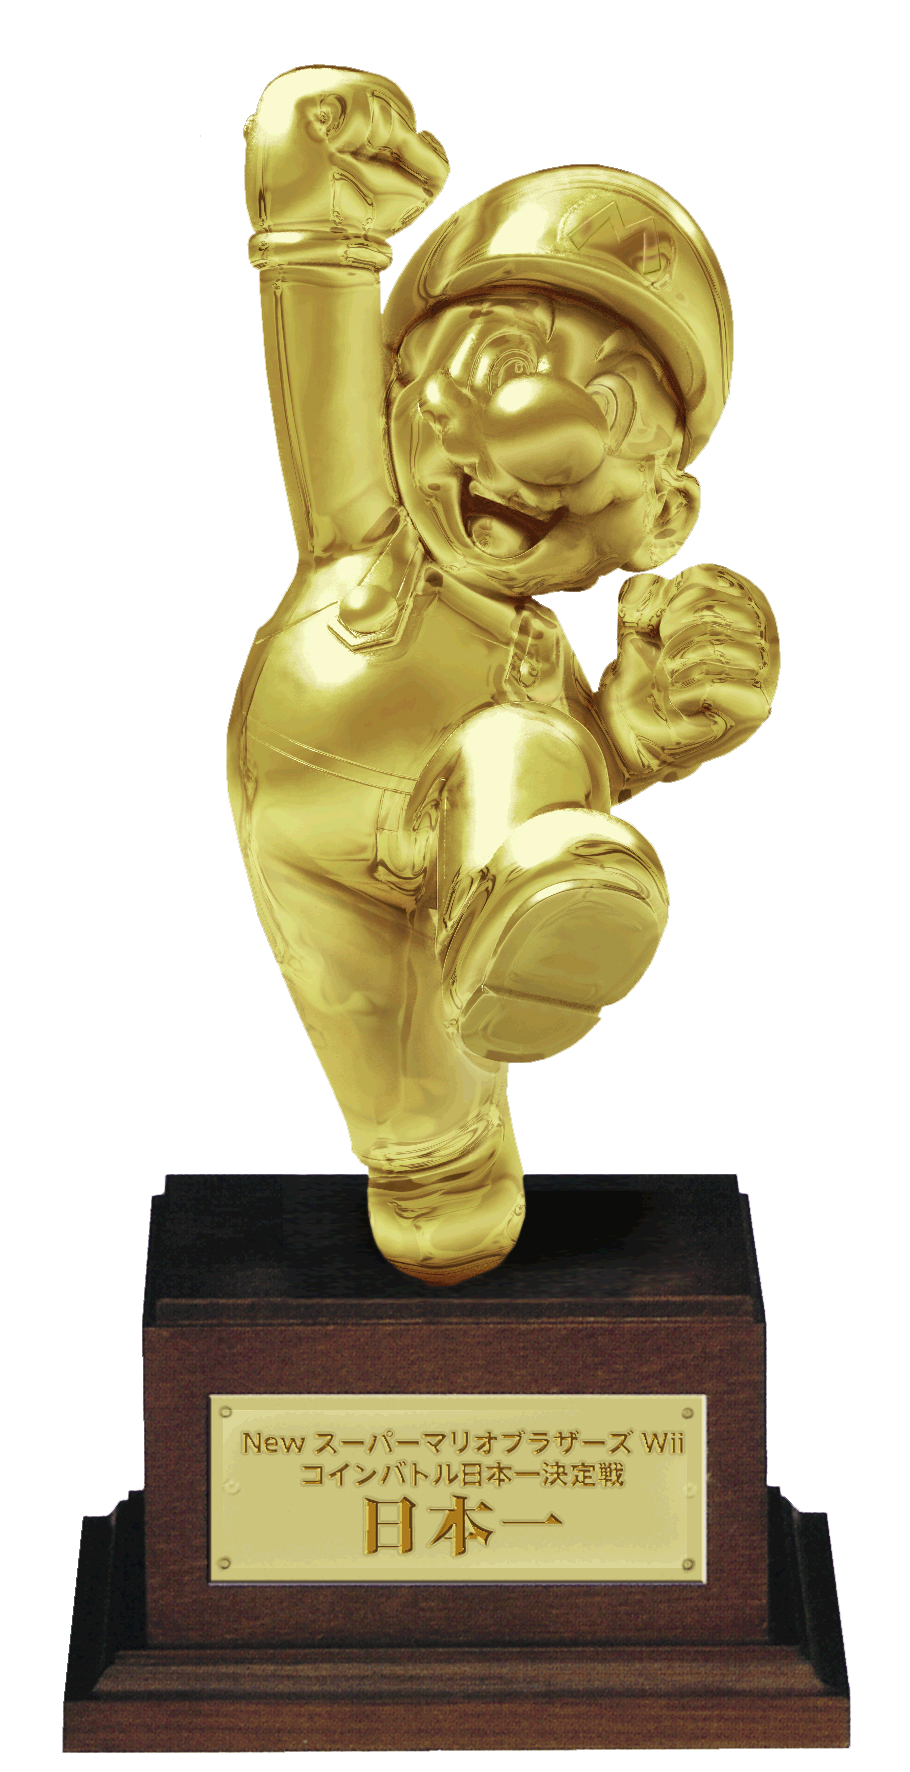 Mario statue png. Photo of gold